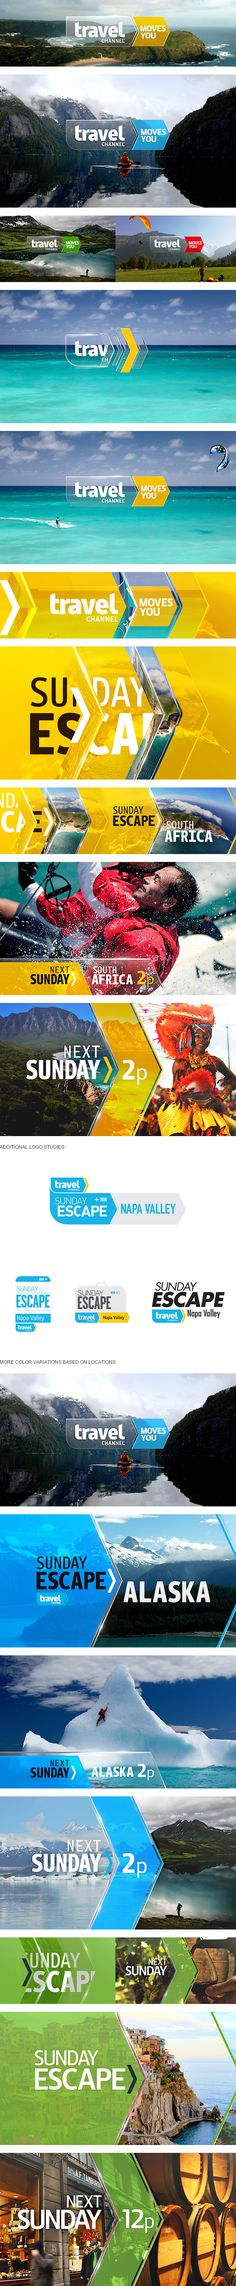 Travel channel sunday escape behance net gallery 18791401 travel channel sunday escape 6 new shows coming to travel channel this year Motion Design, Channel Branding, Branding Design, Logo Design, Bussiness Card, E-mail Marketing, Travel Channel, Travel Design, Media Design